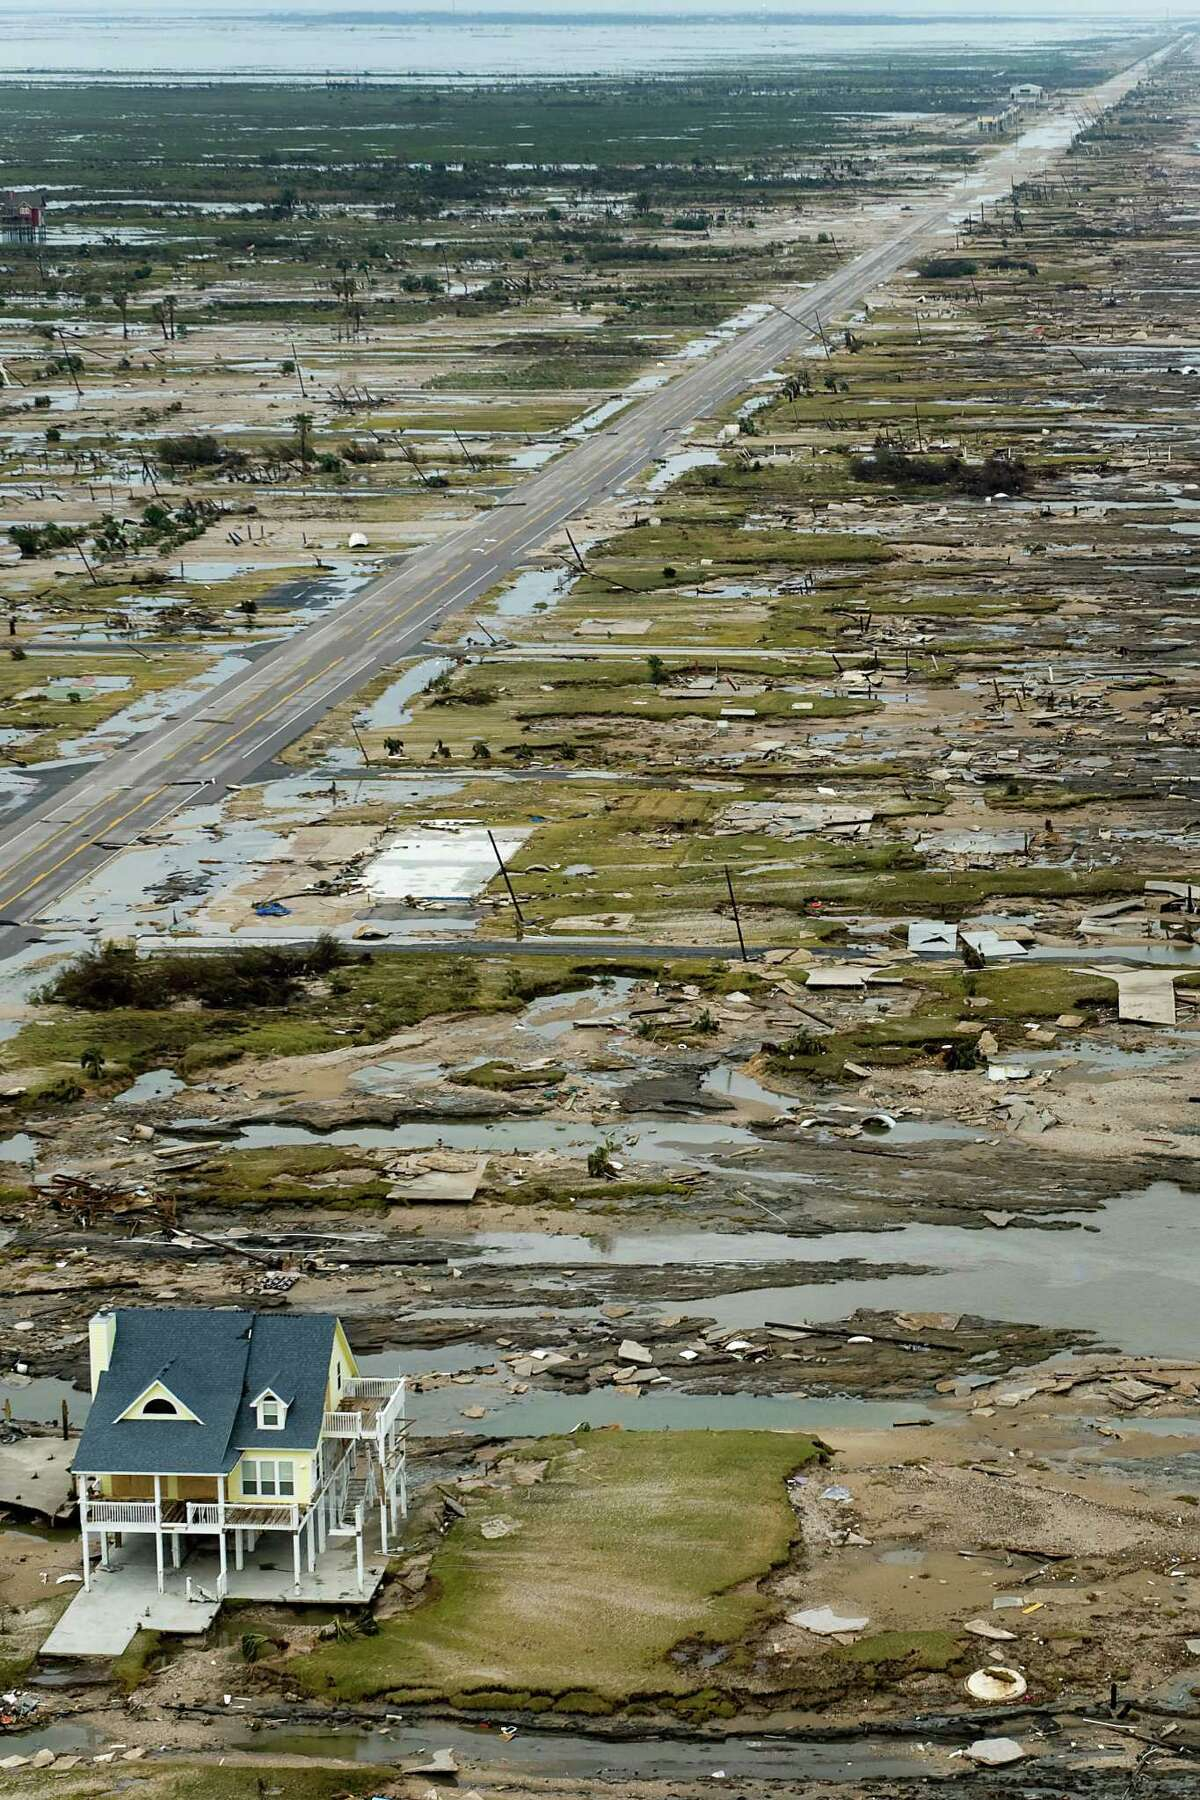 A single house was left standing in 2008 amid the devastation left by Hurricane Ike.